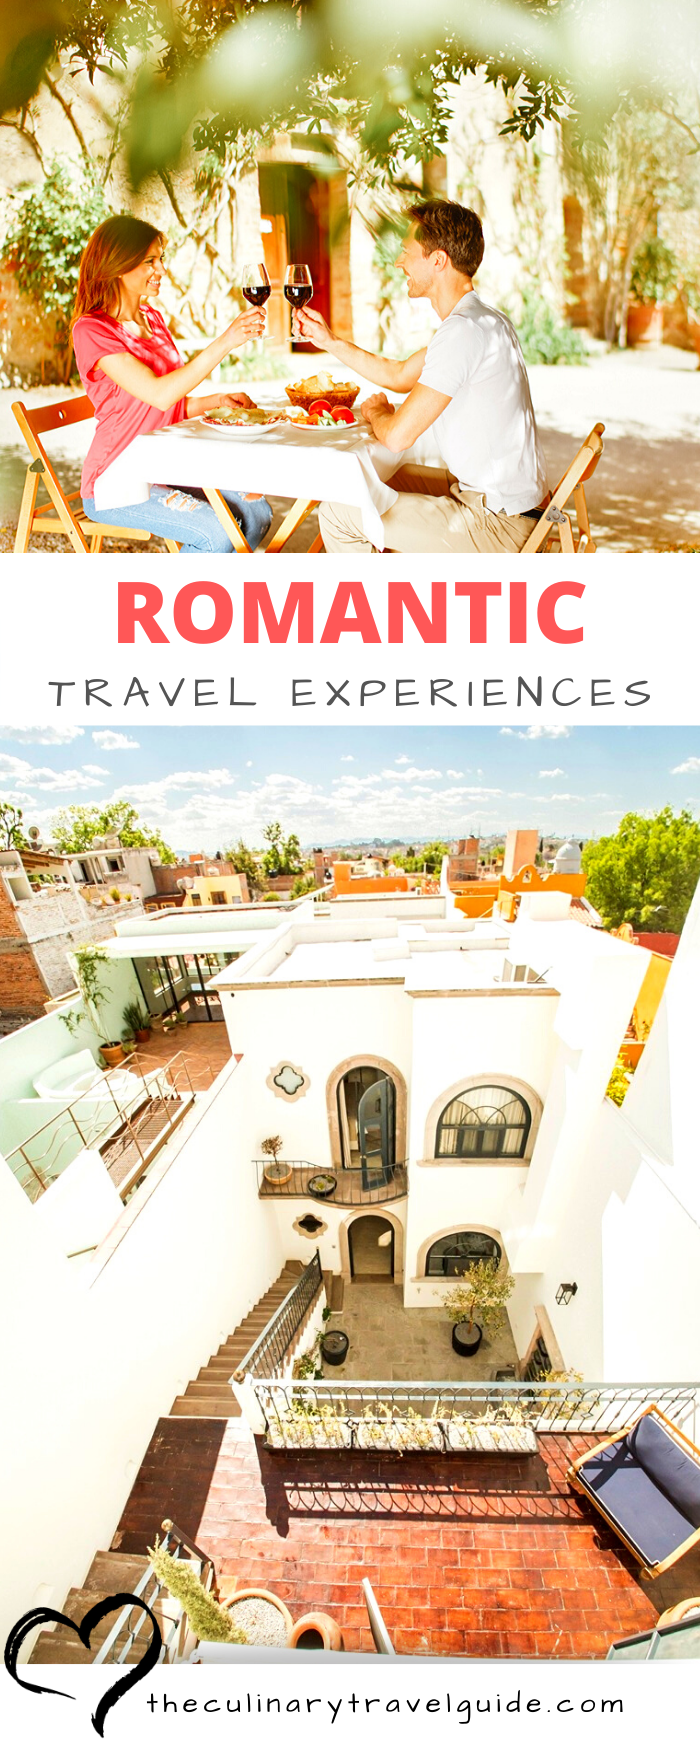 Romantic Travel Experiences - The Culinary Travel Guide - Forget the chocolates and flowers! Celebrate your love on Valentine's Day and throughout the year with these romantic travel destinations. #ValentinesDay #RomanticTravel #RomanticTravelDestinations